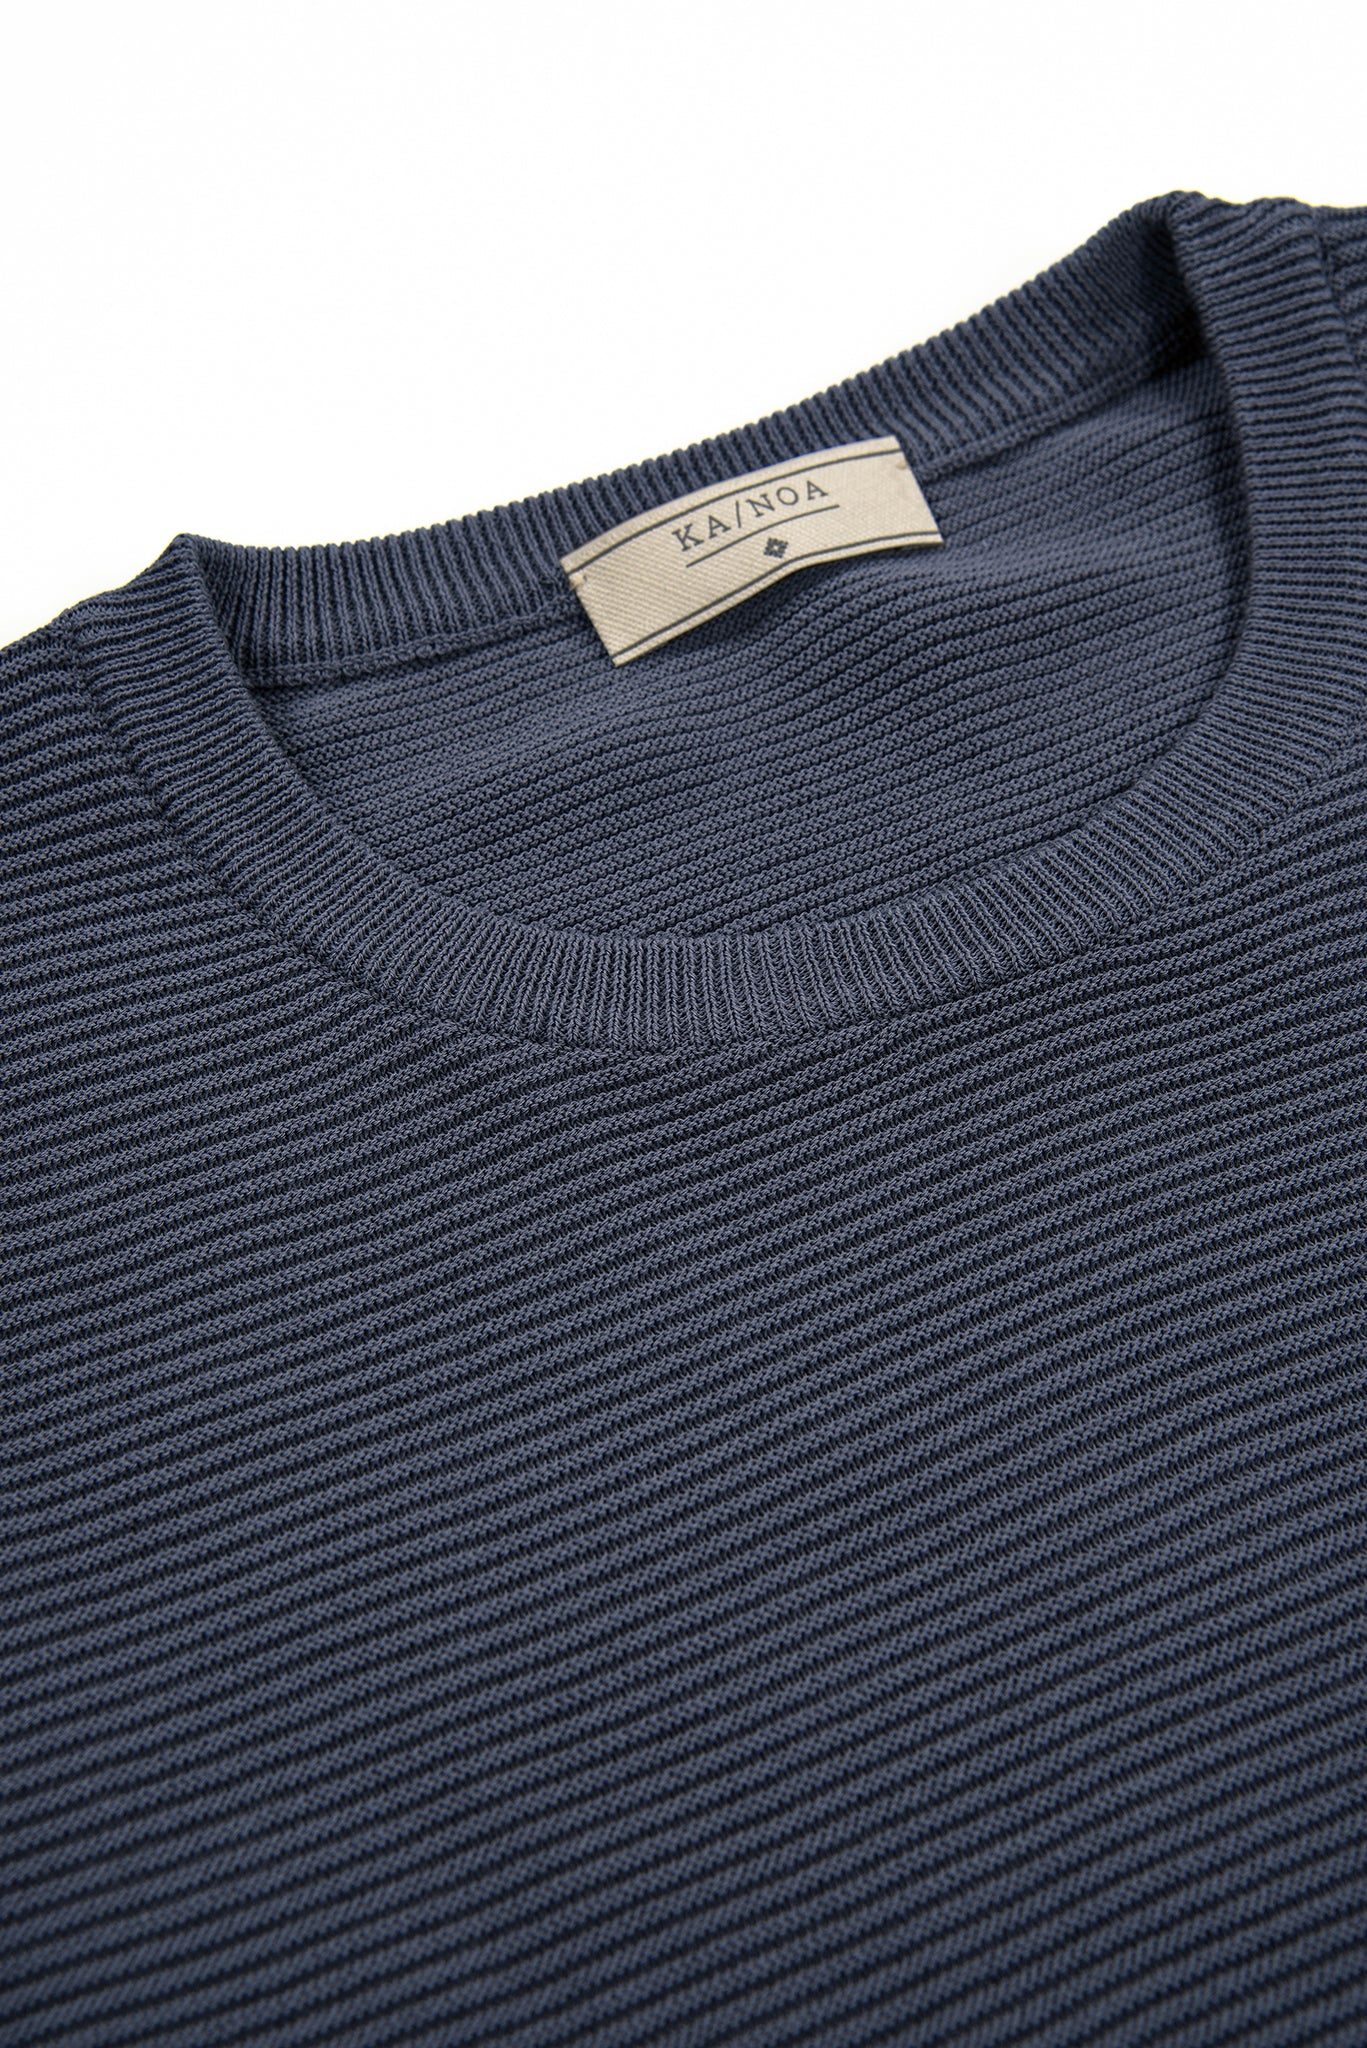 Malten T-Shirt Tricot Compact Cotton (dark blue)